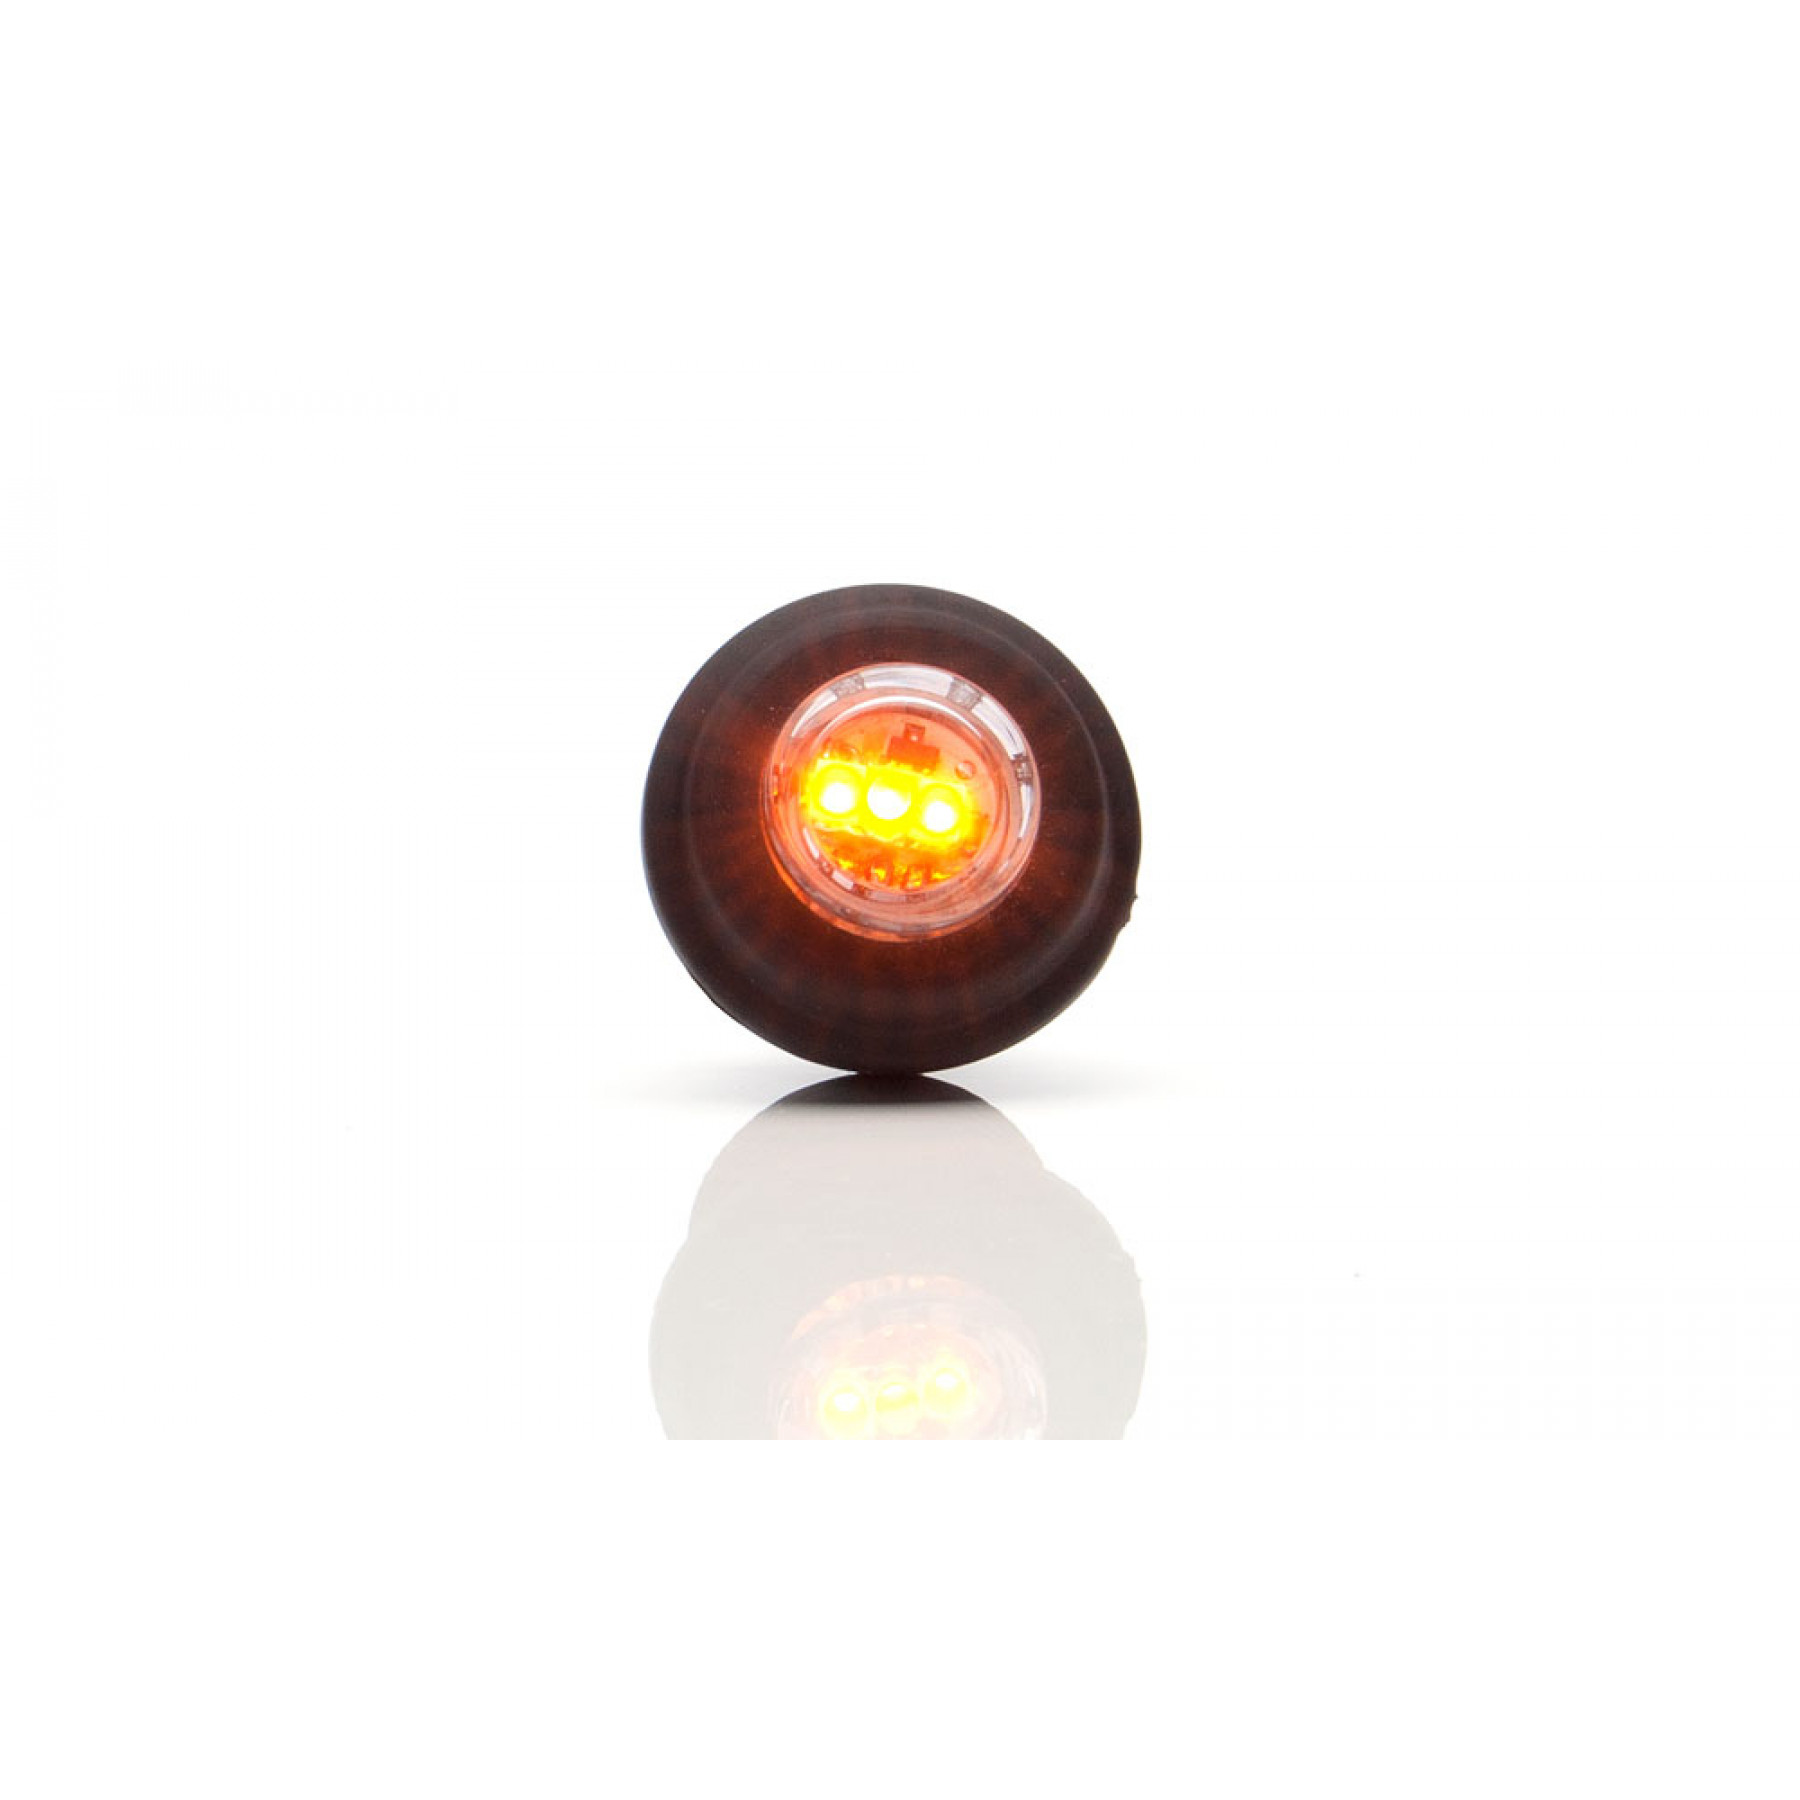 Markeringslamp LED oranje 12/24v inbouw 21mm